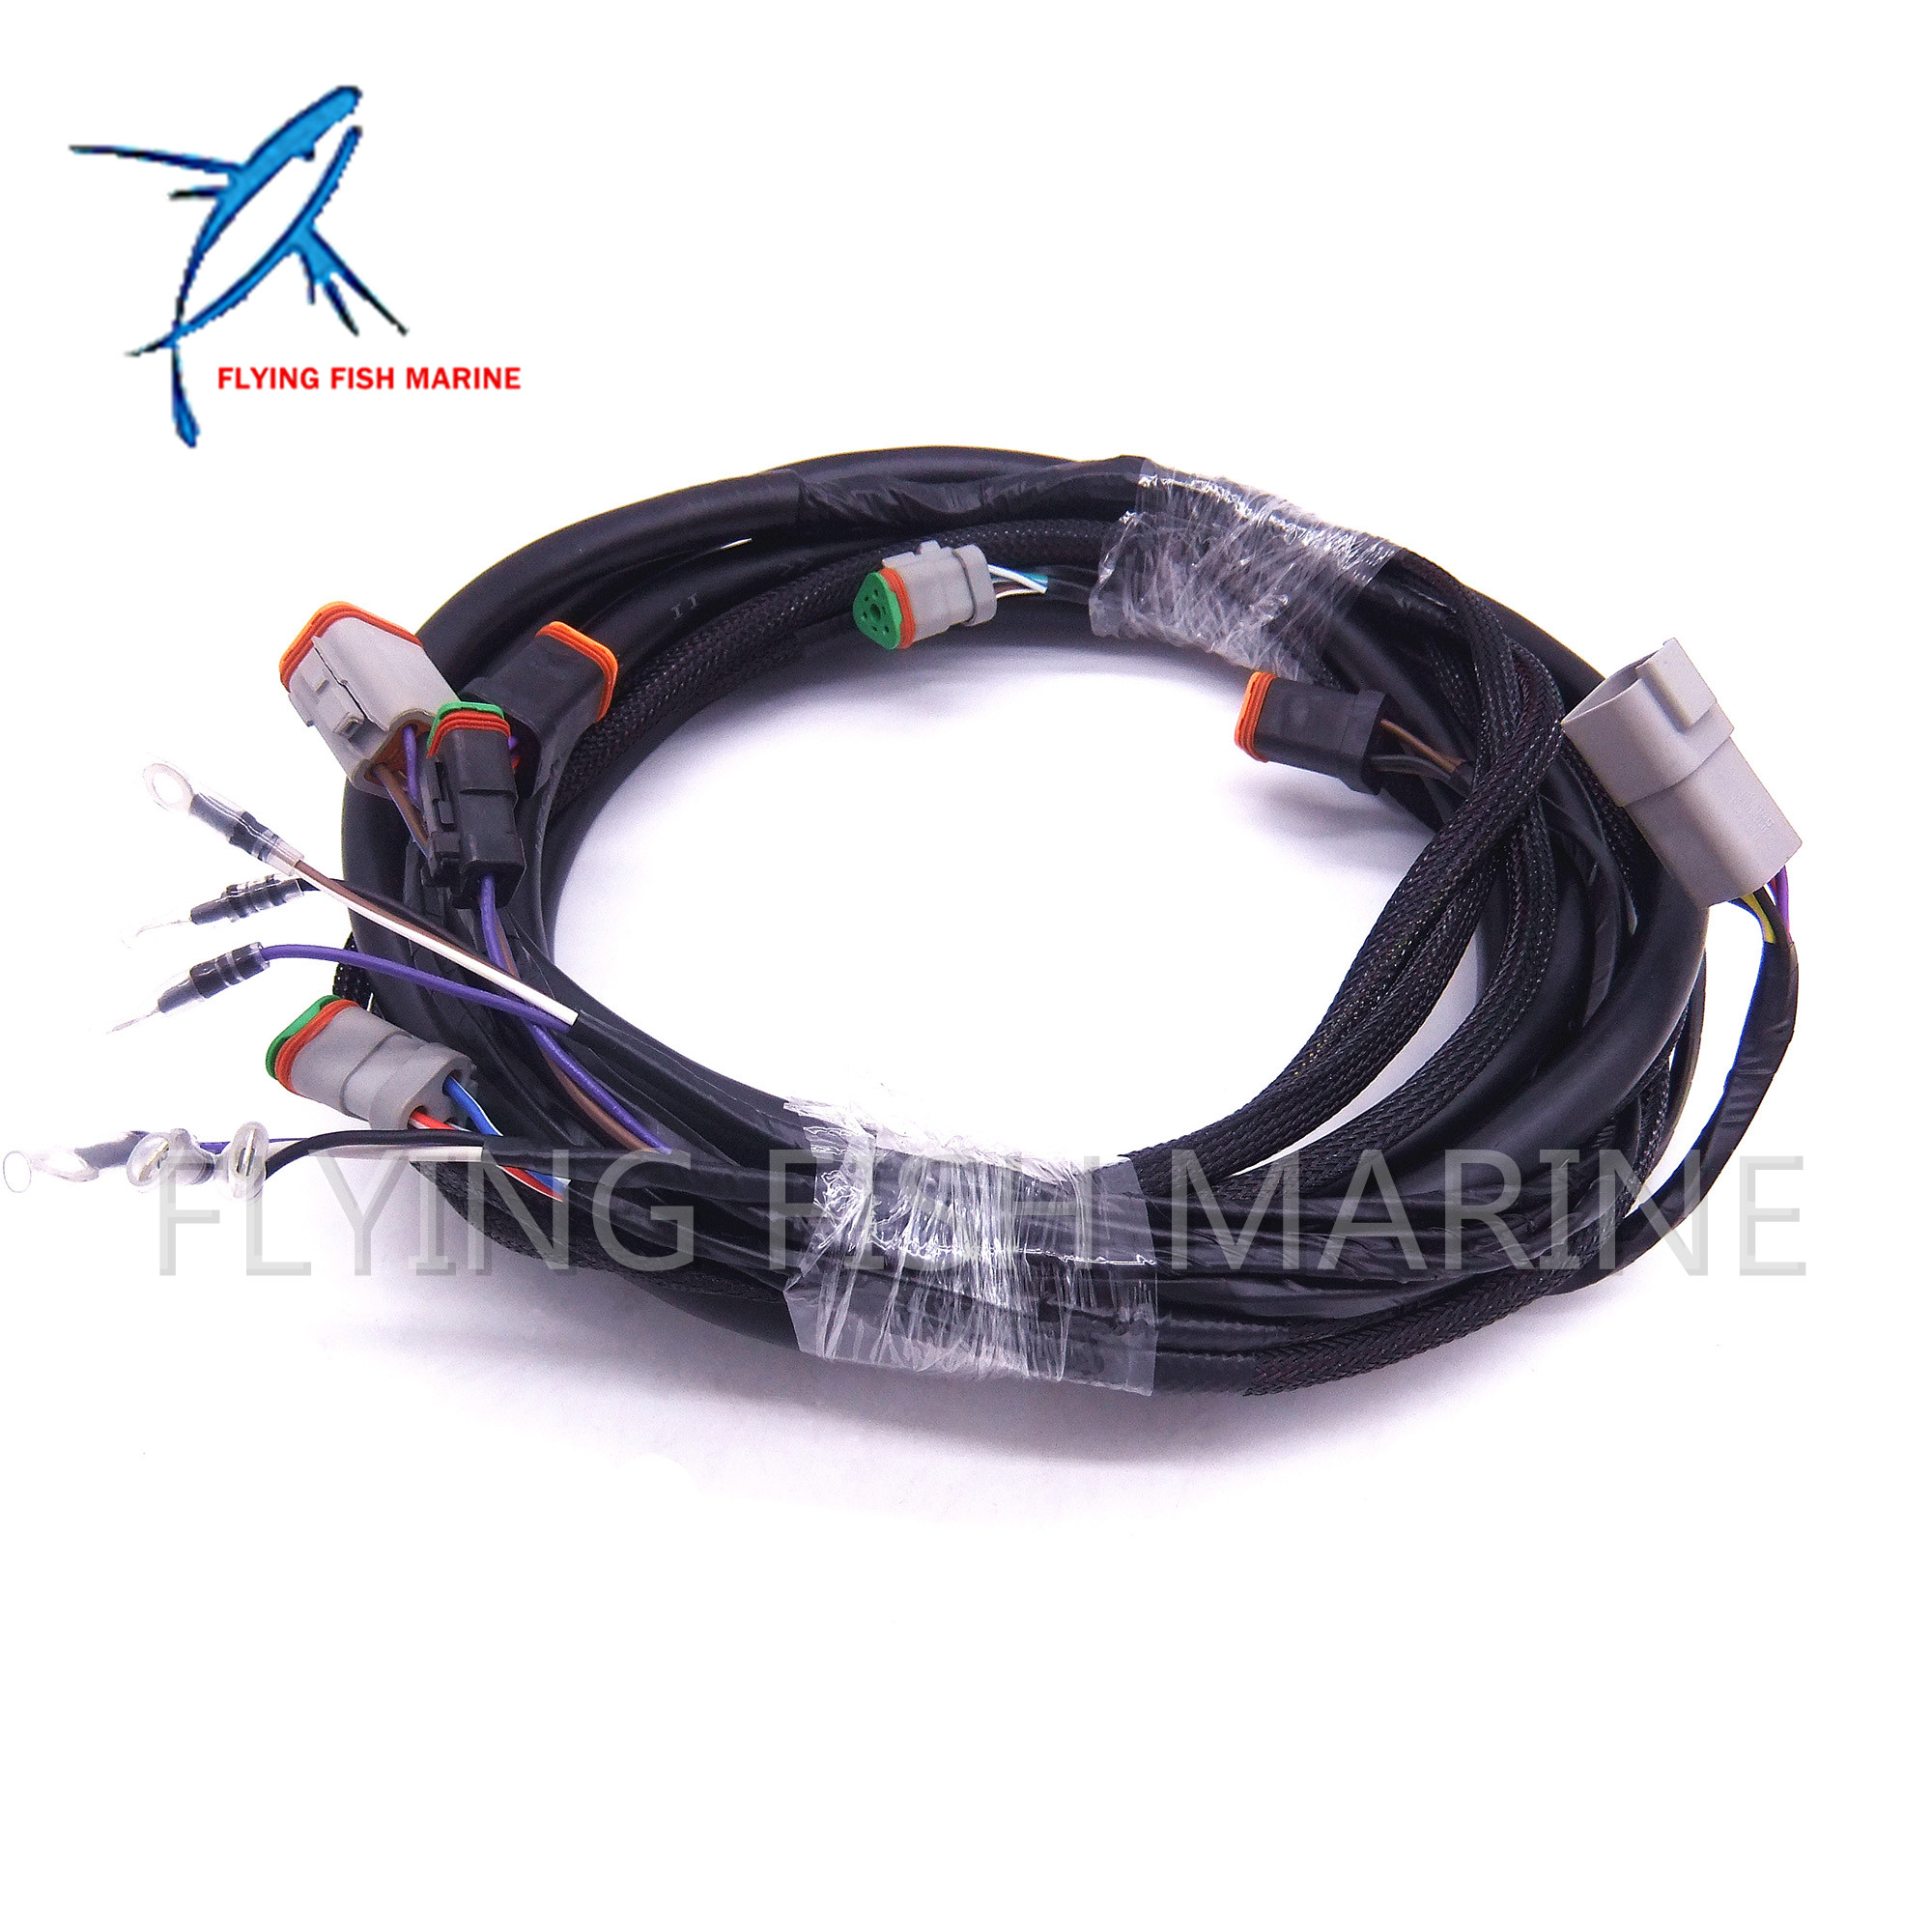 us $138 83 11% off outboard motor 0176340 176340 systemcheck 15ft main modular ignition wiring harness cable for evinrude johnson omc free shipping in Johnson Internal Wiring Harness